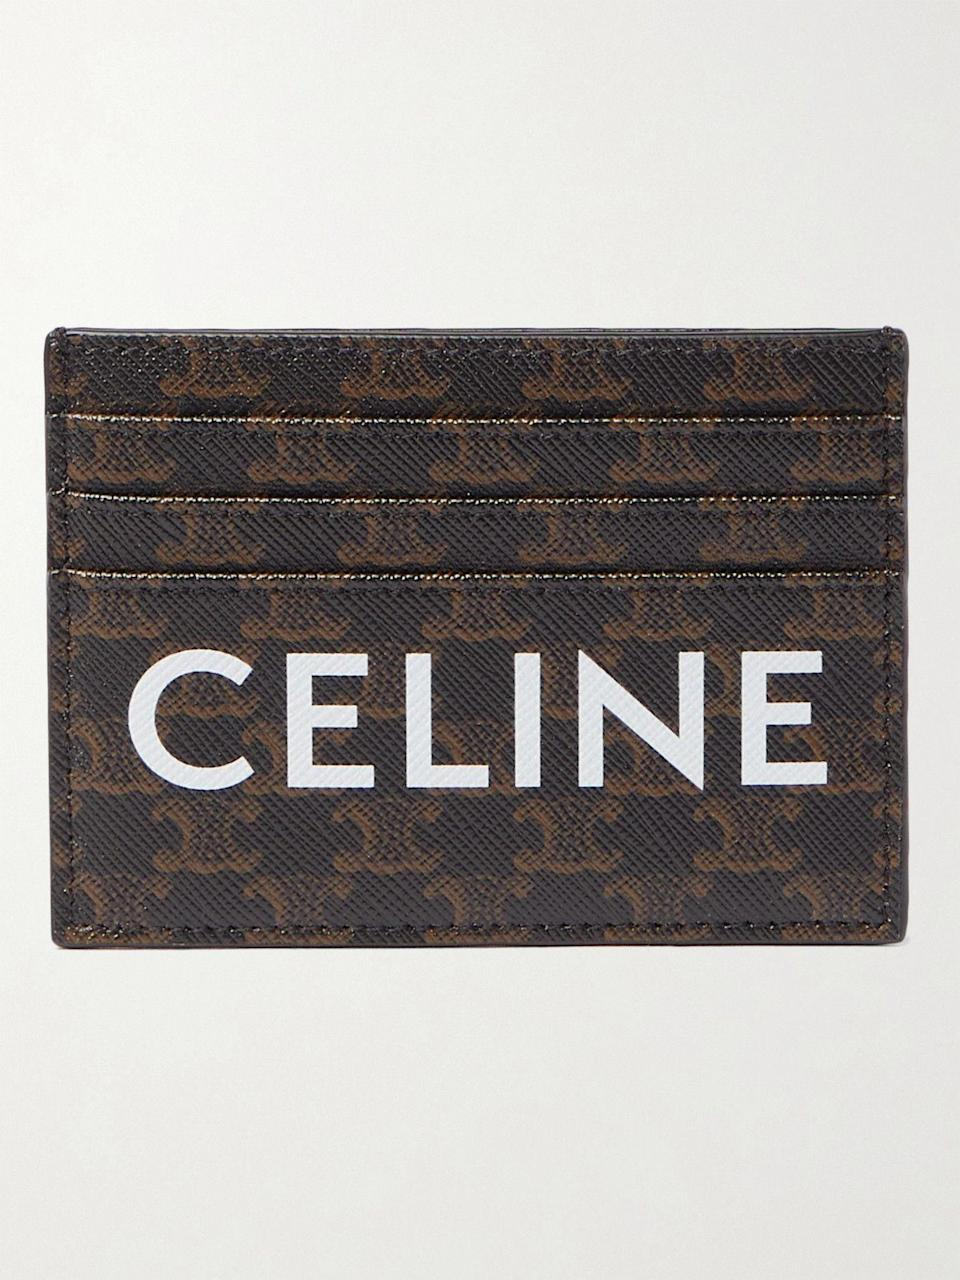 """<p><strong>CELINE HOMME</strong></p><p>mrporter.com</p><p><strong>$315.00</strong></p><p><a href=""""https://go.redirectingat.com?id=74968X1596630&url=https%3A%2F%2Fwww.mrporter.com%2Fen-us%2Fmens%2Fproduct%2Fceline-homme%2Faccessories%2Fcardholders%2Ftriomphe-logo-print-coated-canvas-cardholder%2F560971903940362&sref=https%3A%2F%2Fwww.esquire.com%2Fstyle%2Fmens-accessories%2Fg35924710%2Fmens-luxury-wallets%2F"""" rel=""""nofollow noopener"""" target=""""_blank"""" data-ylk=""""slk:Shop Now"""" class=""""link rapid-noclick-resp"""">Shop Now</a></p><p>Come for the big ol' """"CELINE"""" graphic. Stay for the iconic repeated """"Trimophe"""" logo behind it.</p>"""